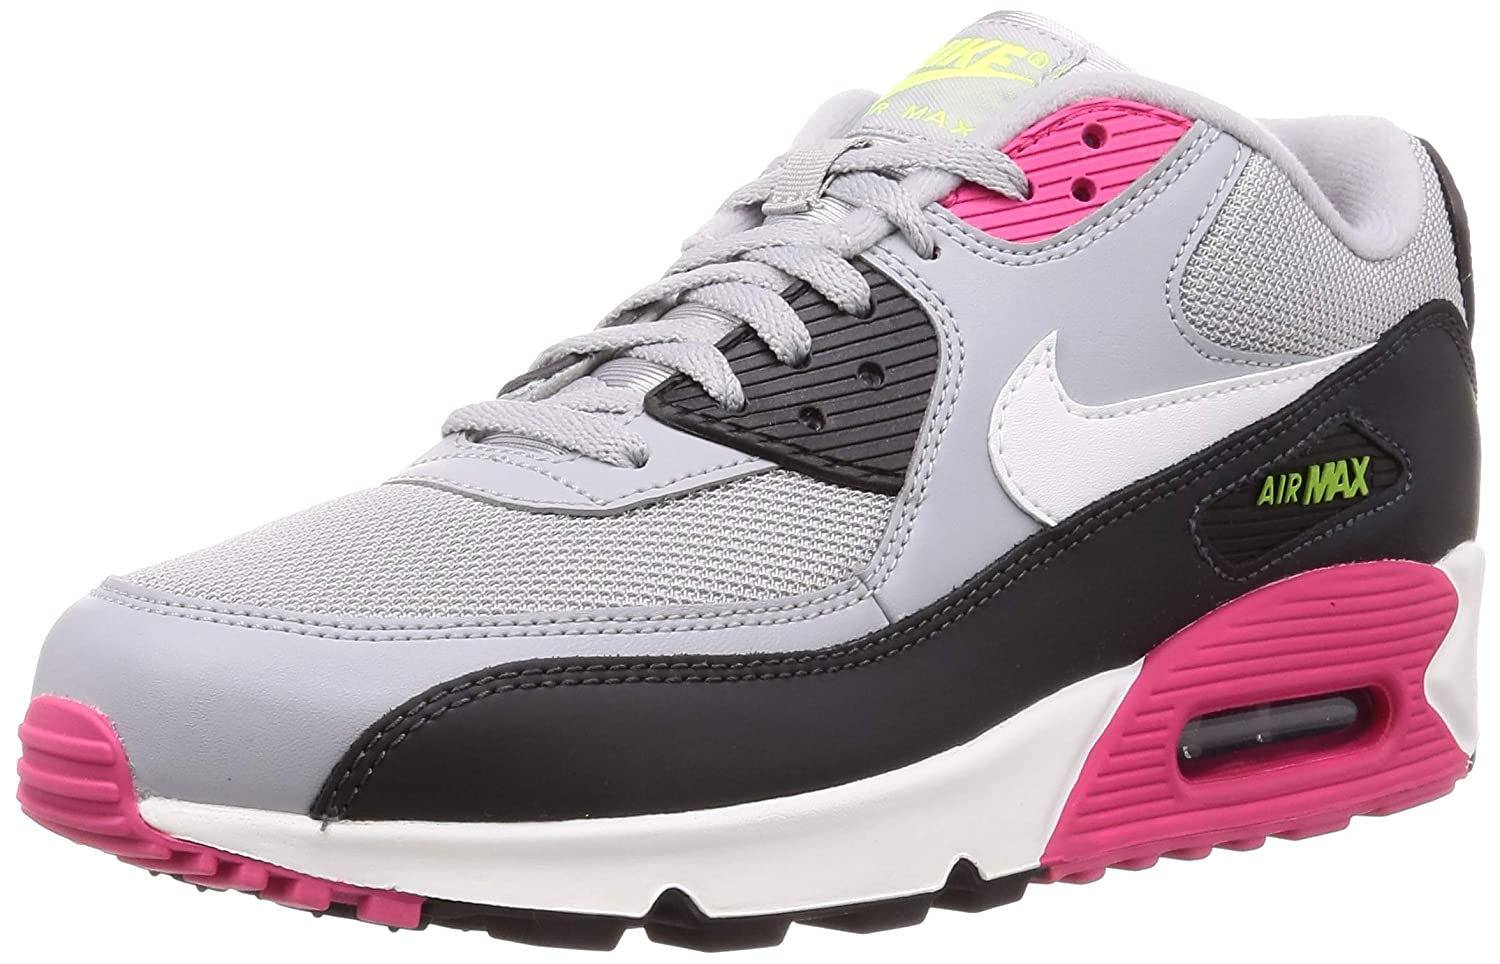 Nike Air Max 90 Essential Mens Shoes Wolf GreyWhiteRush PinkVolt aj1285 020 (7.5 M US)